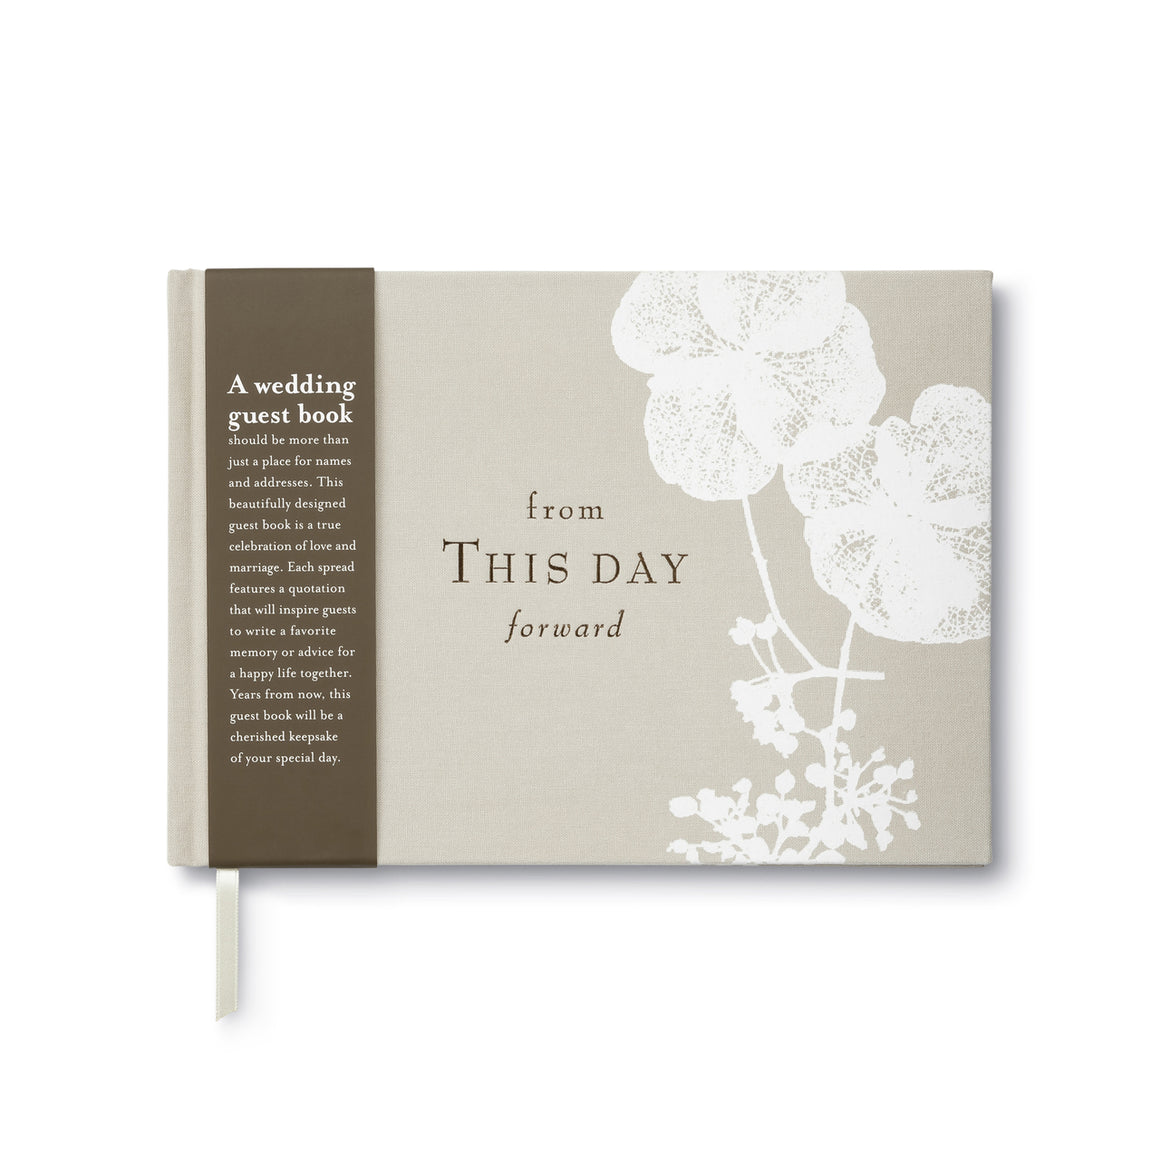 Compendium Wedding Guest Book - From This Day Forward